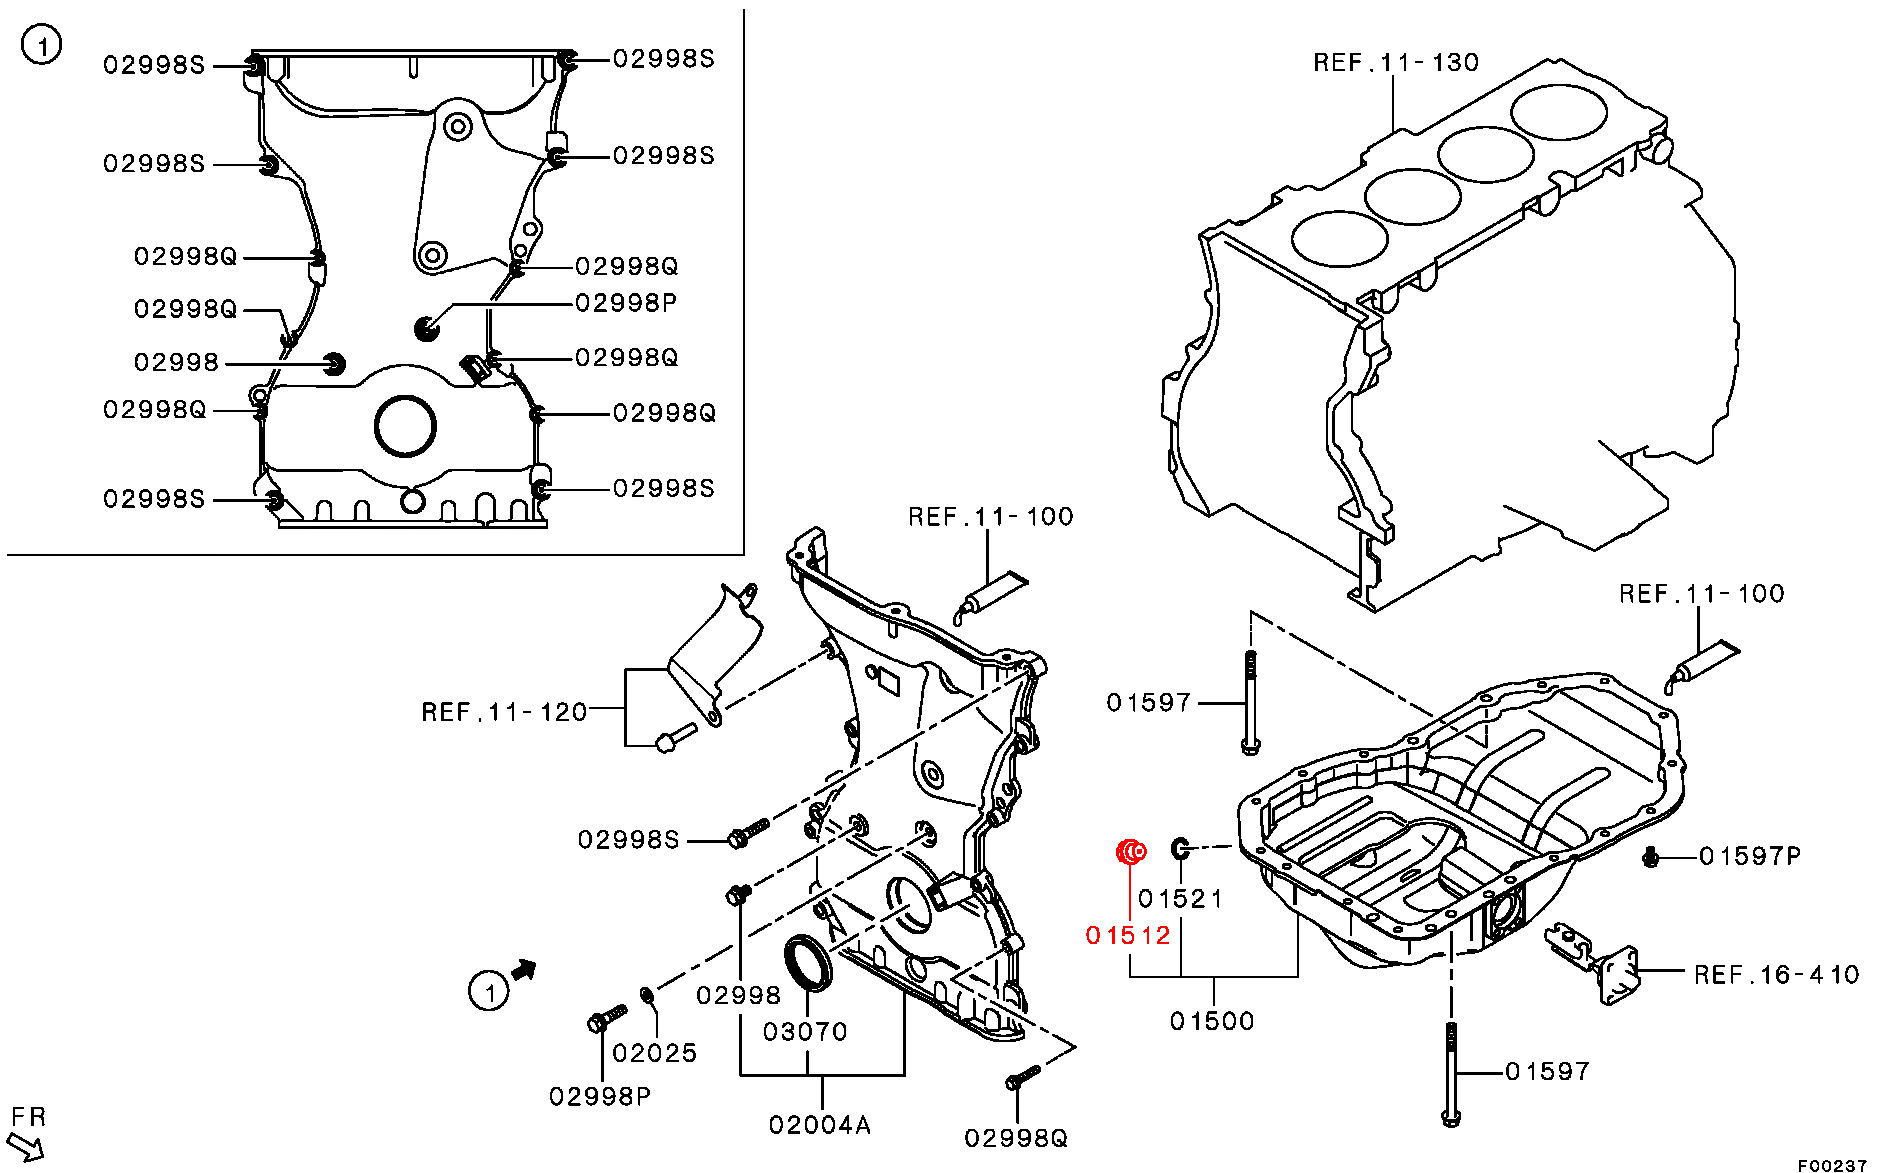 Viamoto Car Parts Mitsubishi Lancer Evo 2008 Engine Diagram For 10 Sump Exploded Click Here Part Number